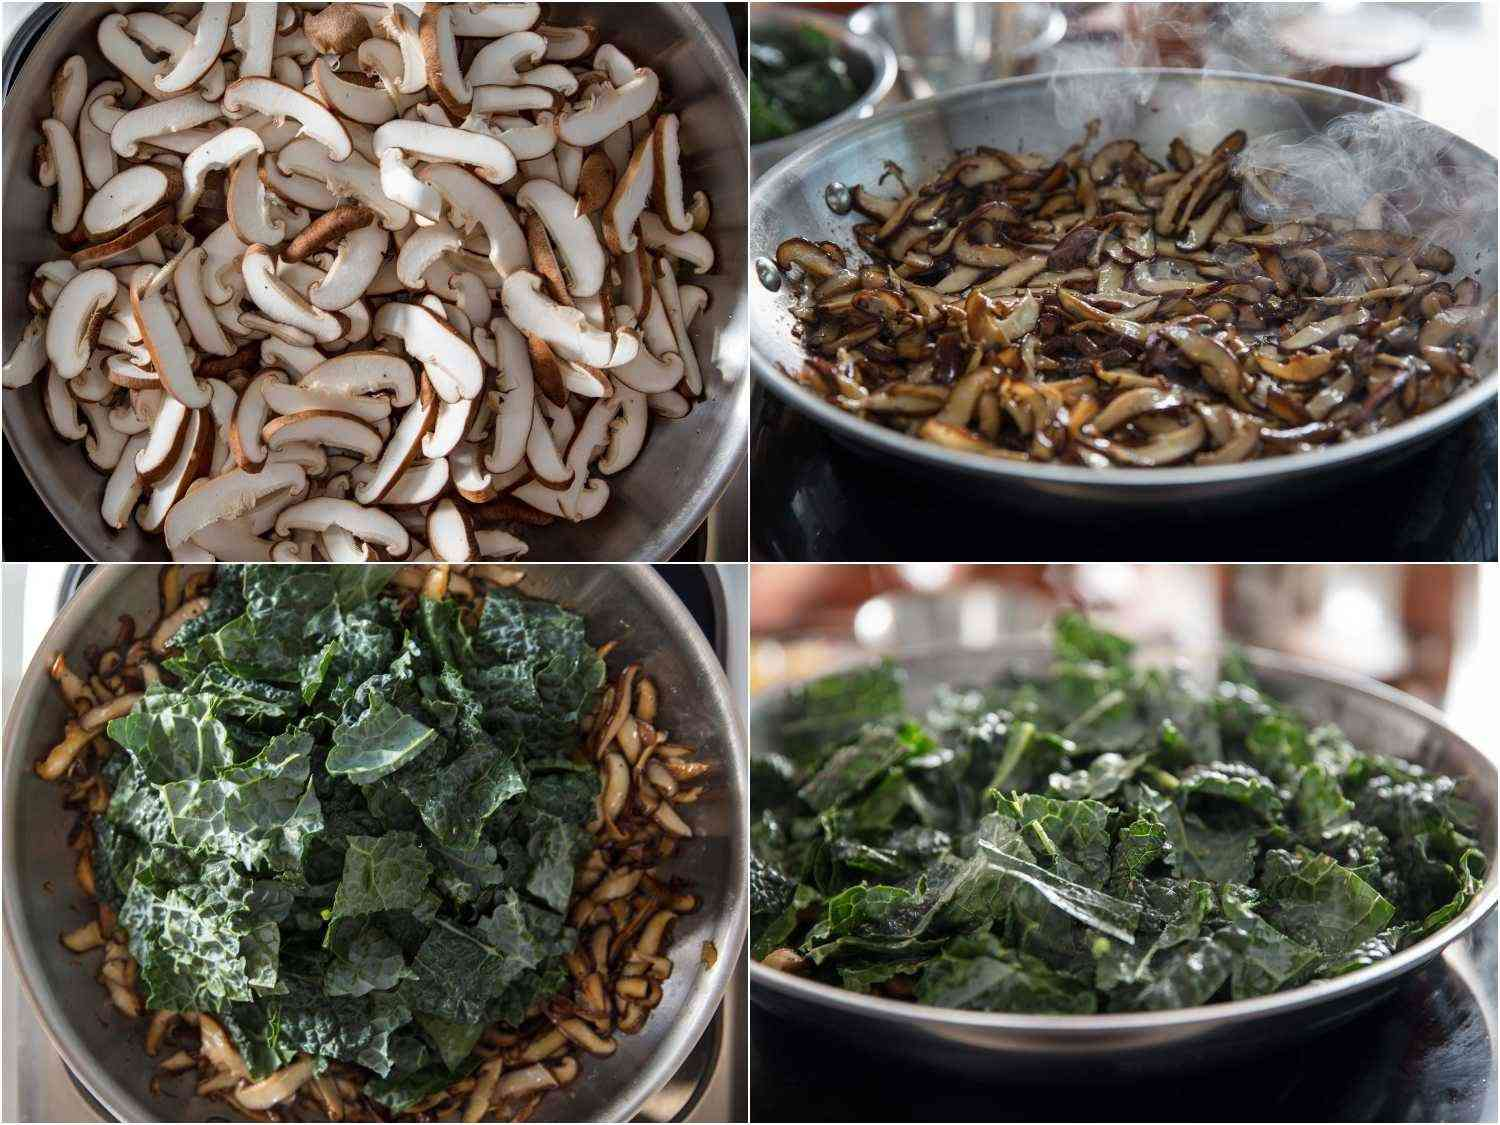 Process shots of browning mushrooms and wilting kale in a skillet.